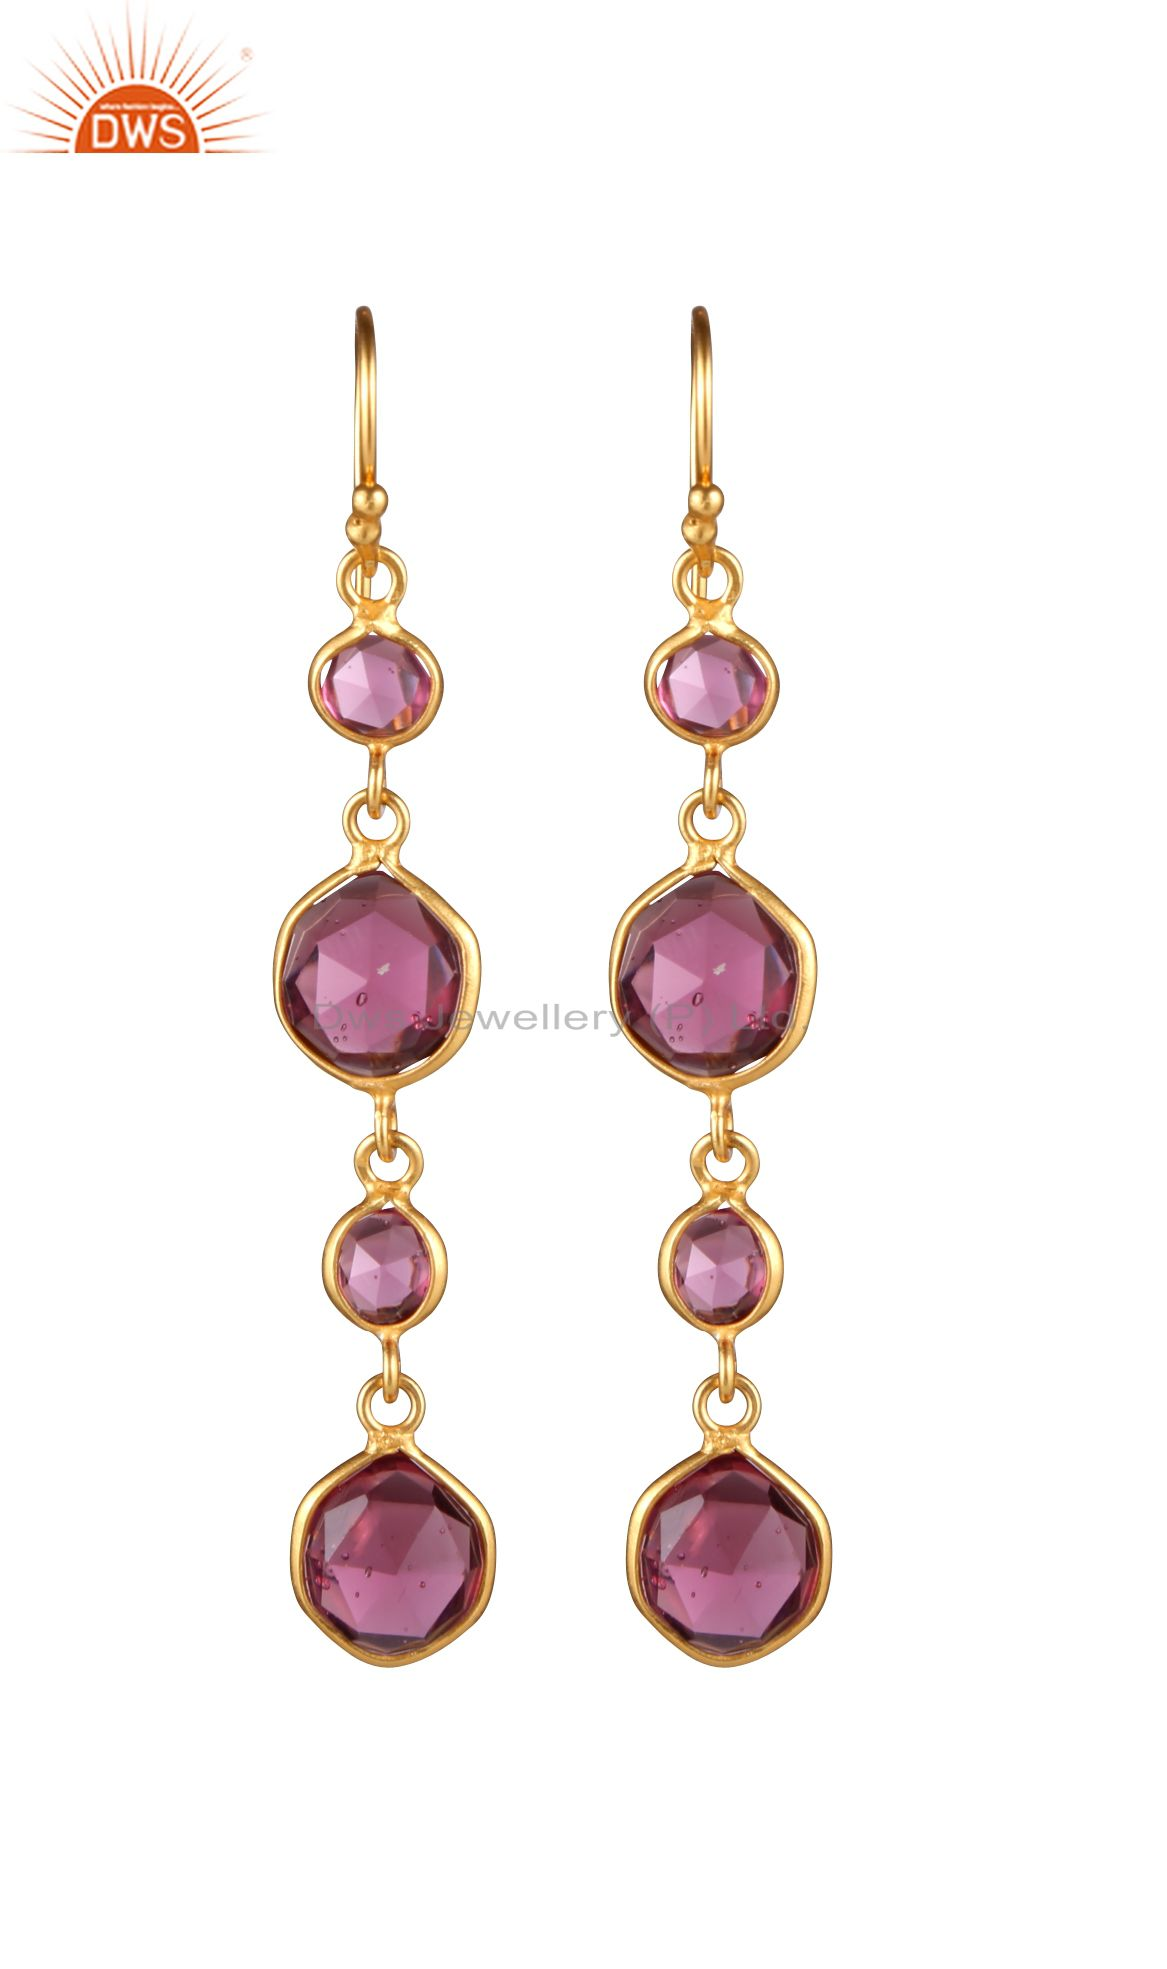 18K Yellow Gold Plated Sterling Silver Pink Corundum Bezel Set Dangle Earrings